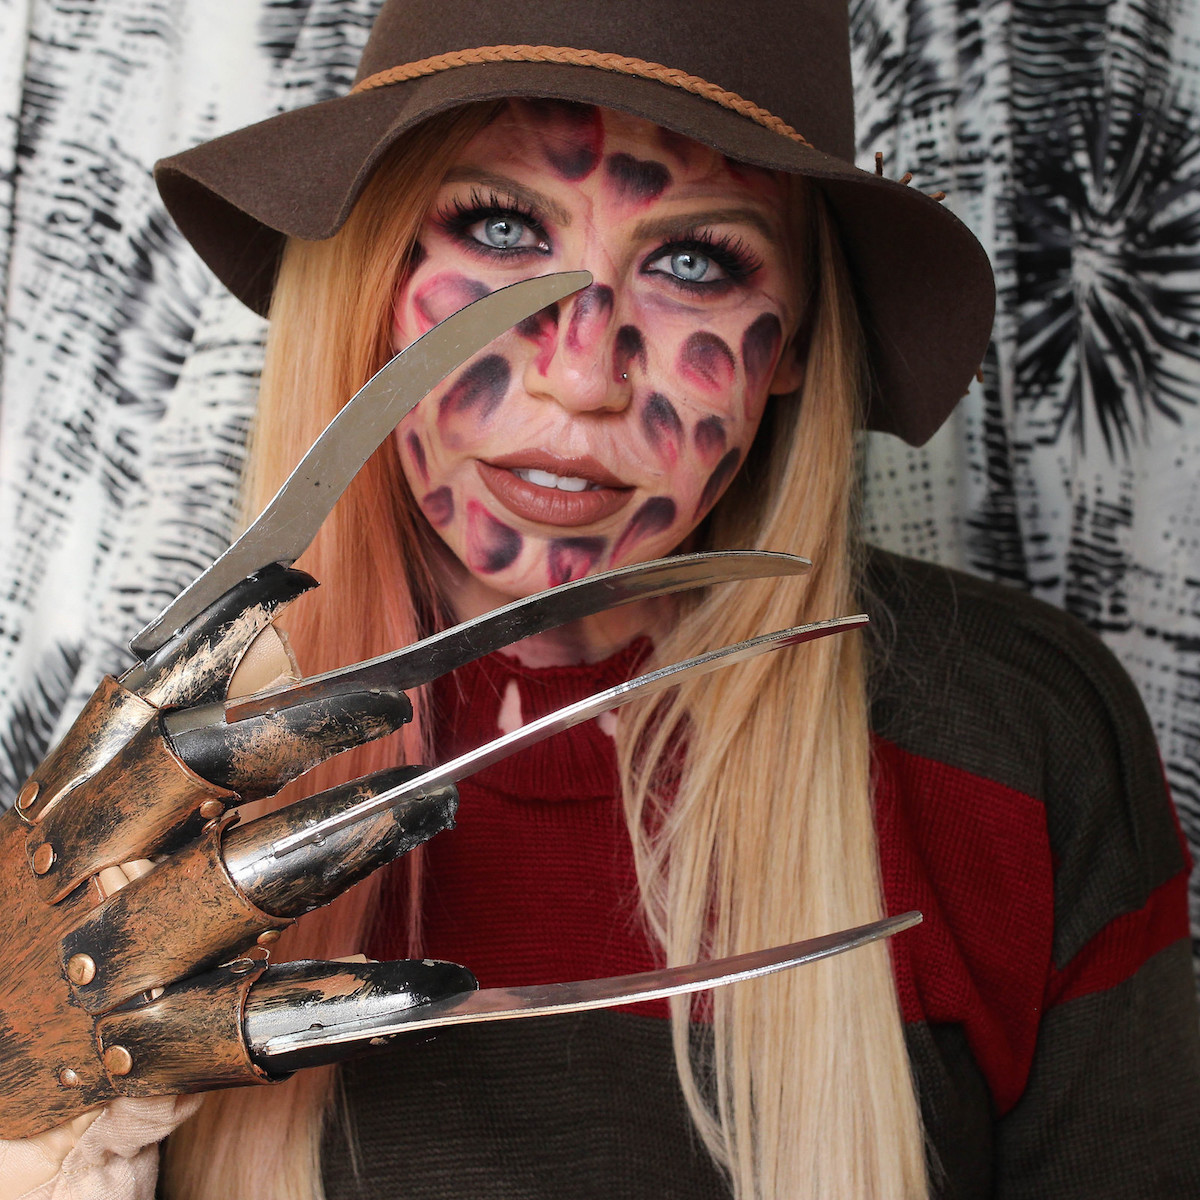 So You Wanna Be Freddy Krueger for Halloween